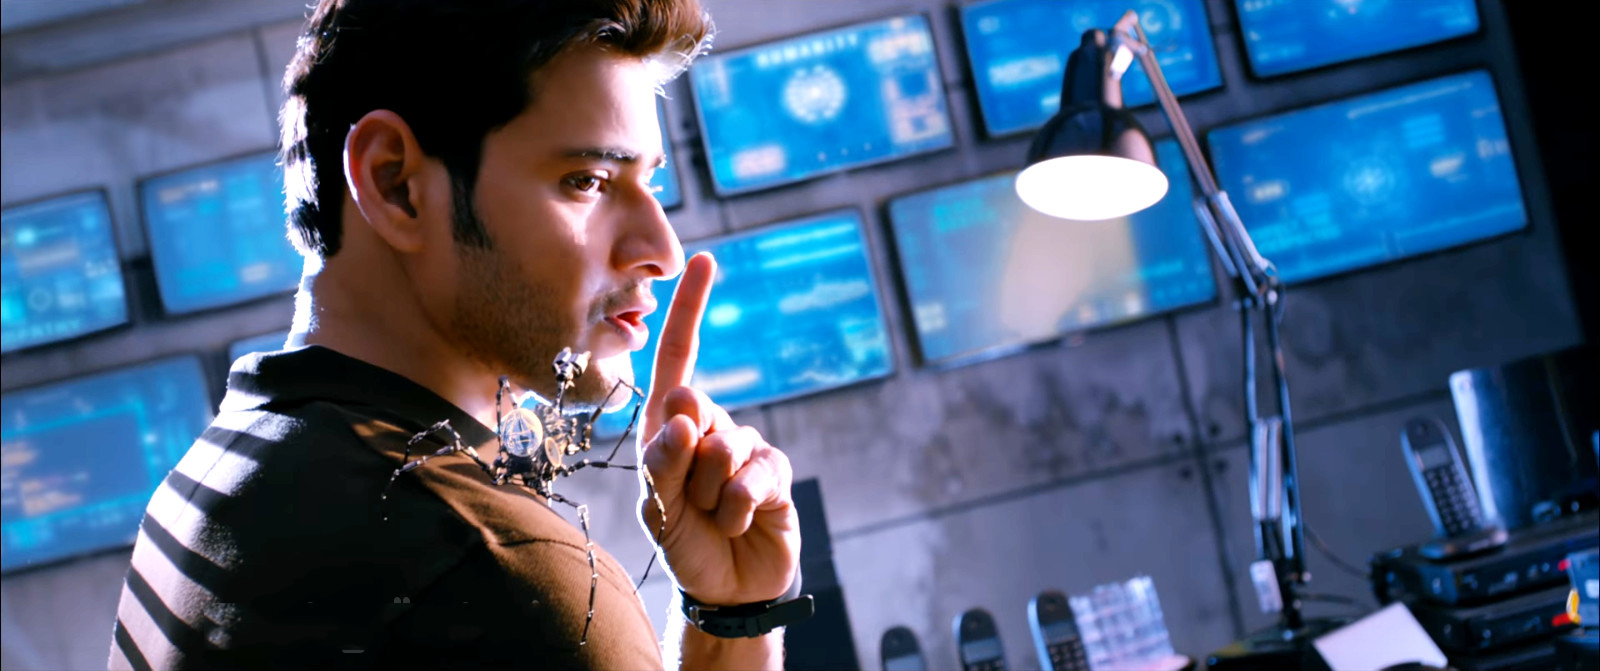 mahesh babu lovely silence still spyder mobile background free hd download images